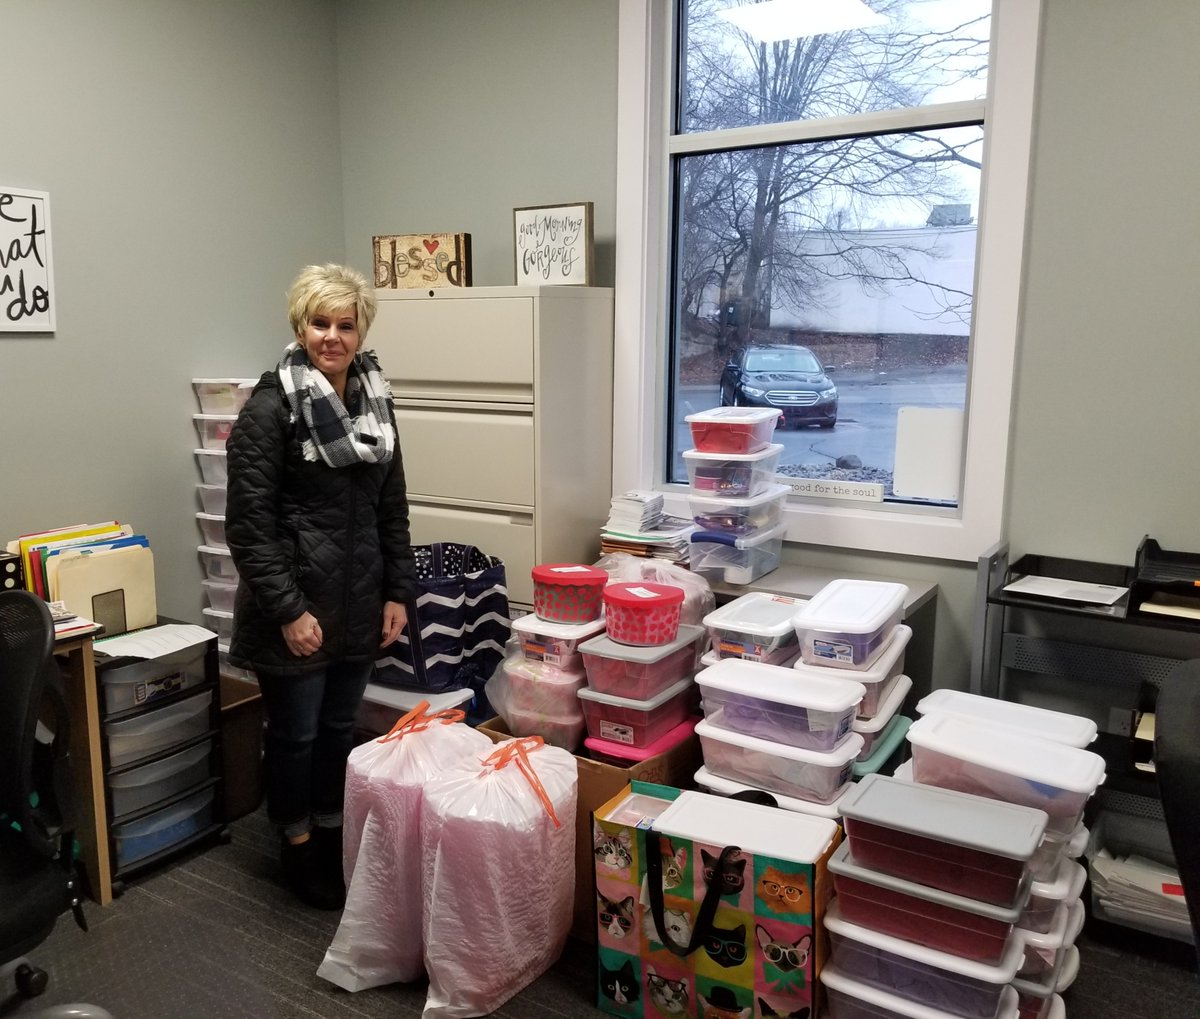 #ThankfulThursday post for #WomenUnited's #ValentinesDay Shoebox Project. Thank you to all the volunteers involved-150 shoeboxes of kindness were donated! The shoeboxes will go to single moms at Pocono Services for Families and Children #LiveUnited #PoconoProud #WomenUnited pic.twitter.com/fwZBVUCA8n